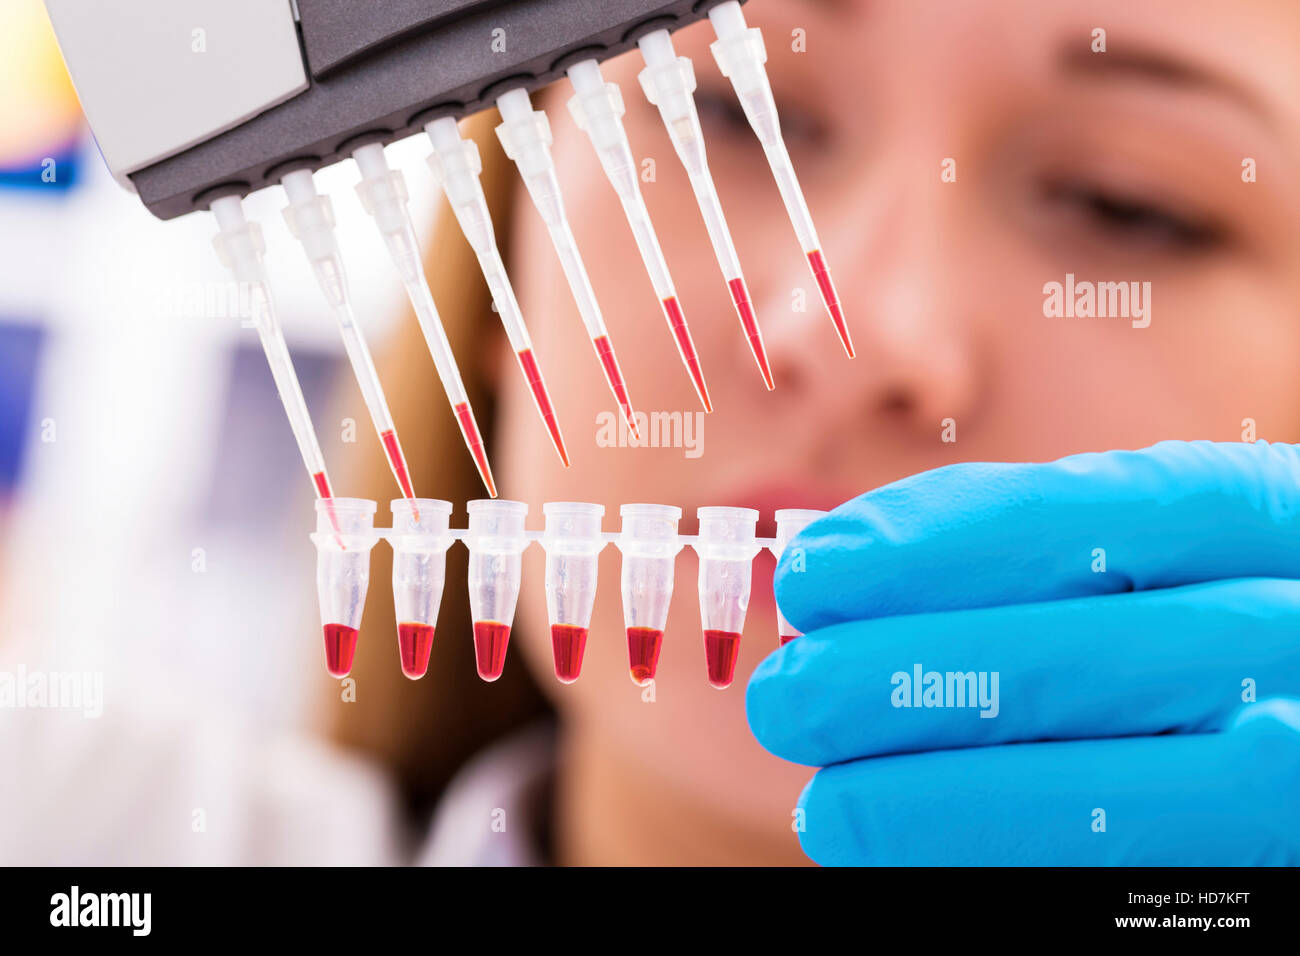 MODEL RELEASED. Woman holding micro tubes and pipettes, close up. - Stock Image